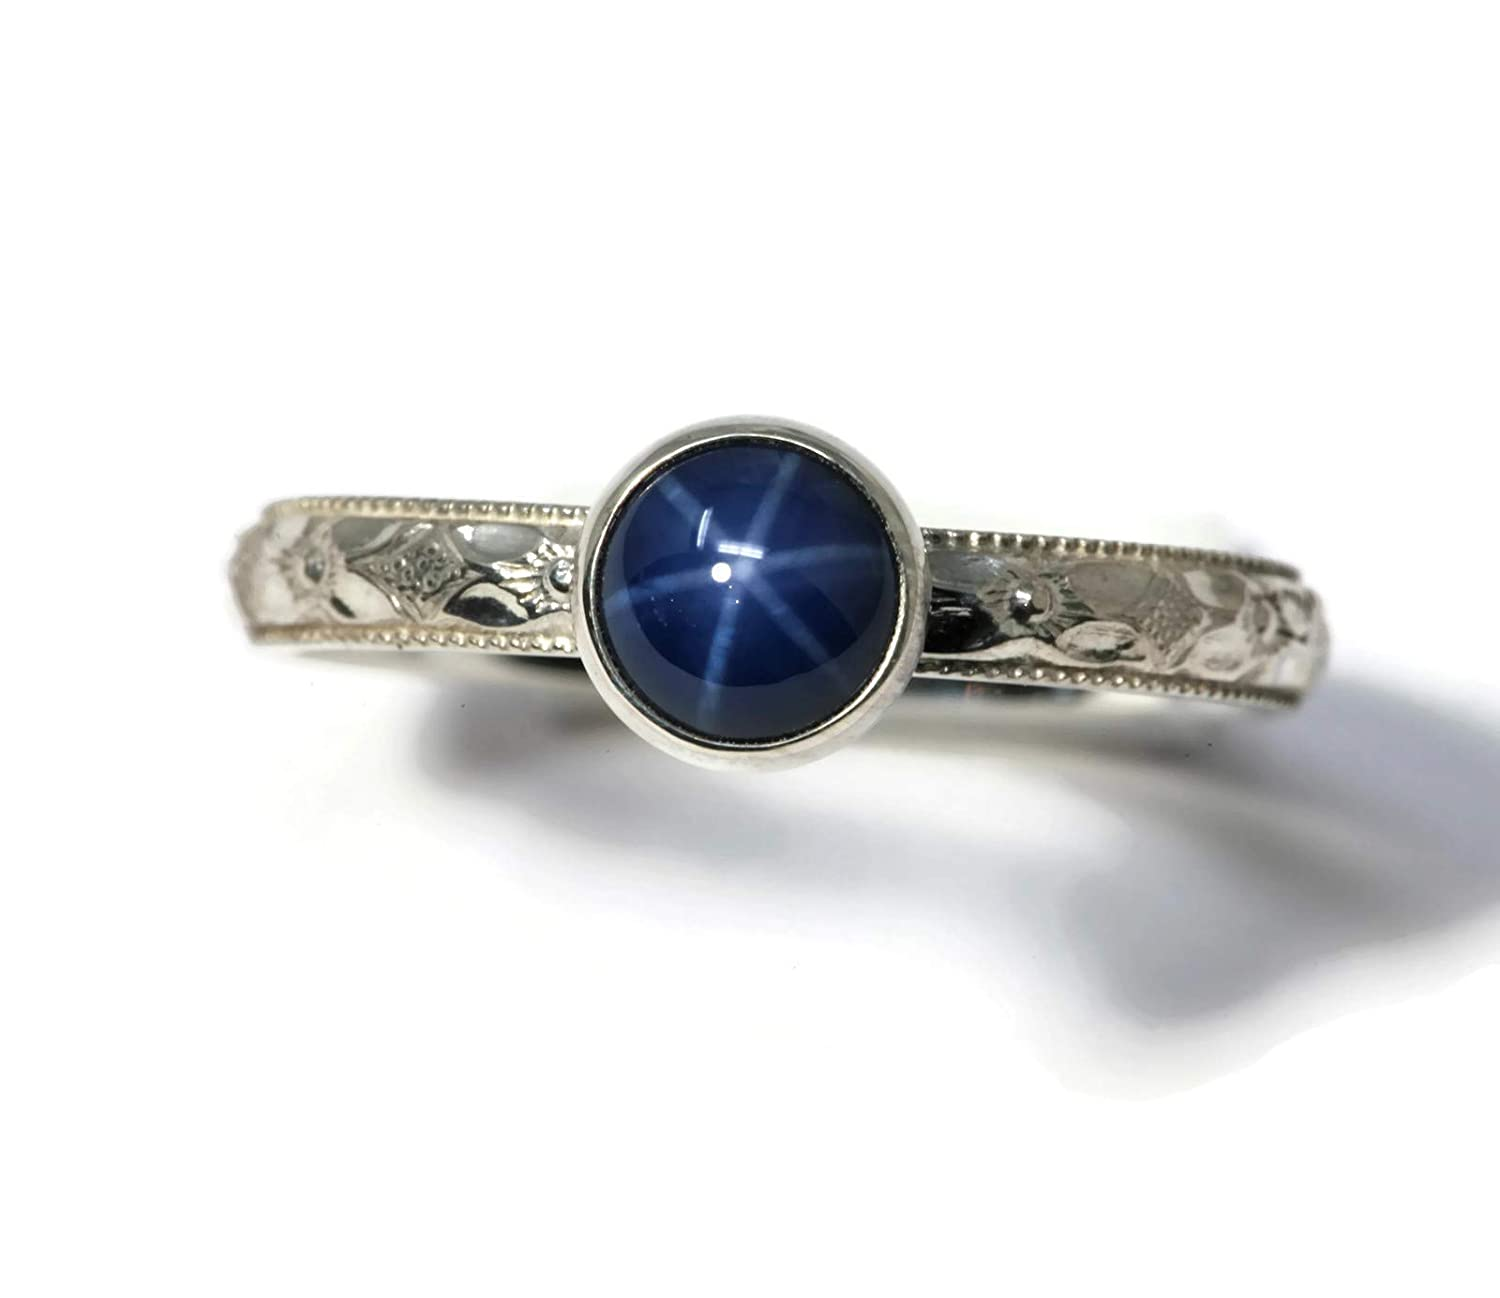 6mm Created Blue Star Sapphire and Sterling Silver Ring on Symmetrical Flower Pattern Band